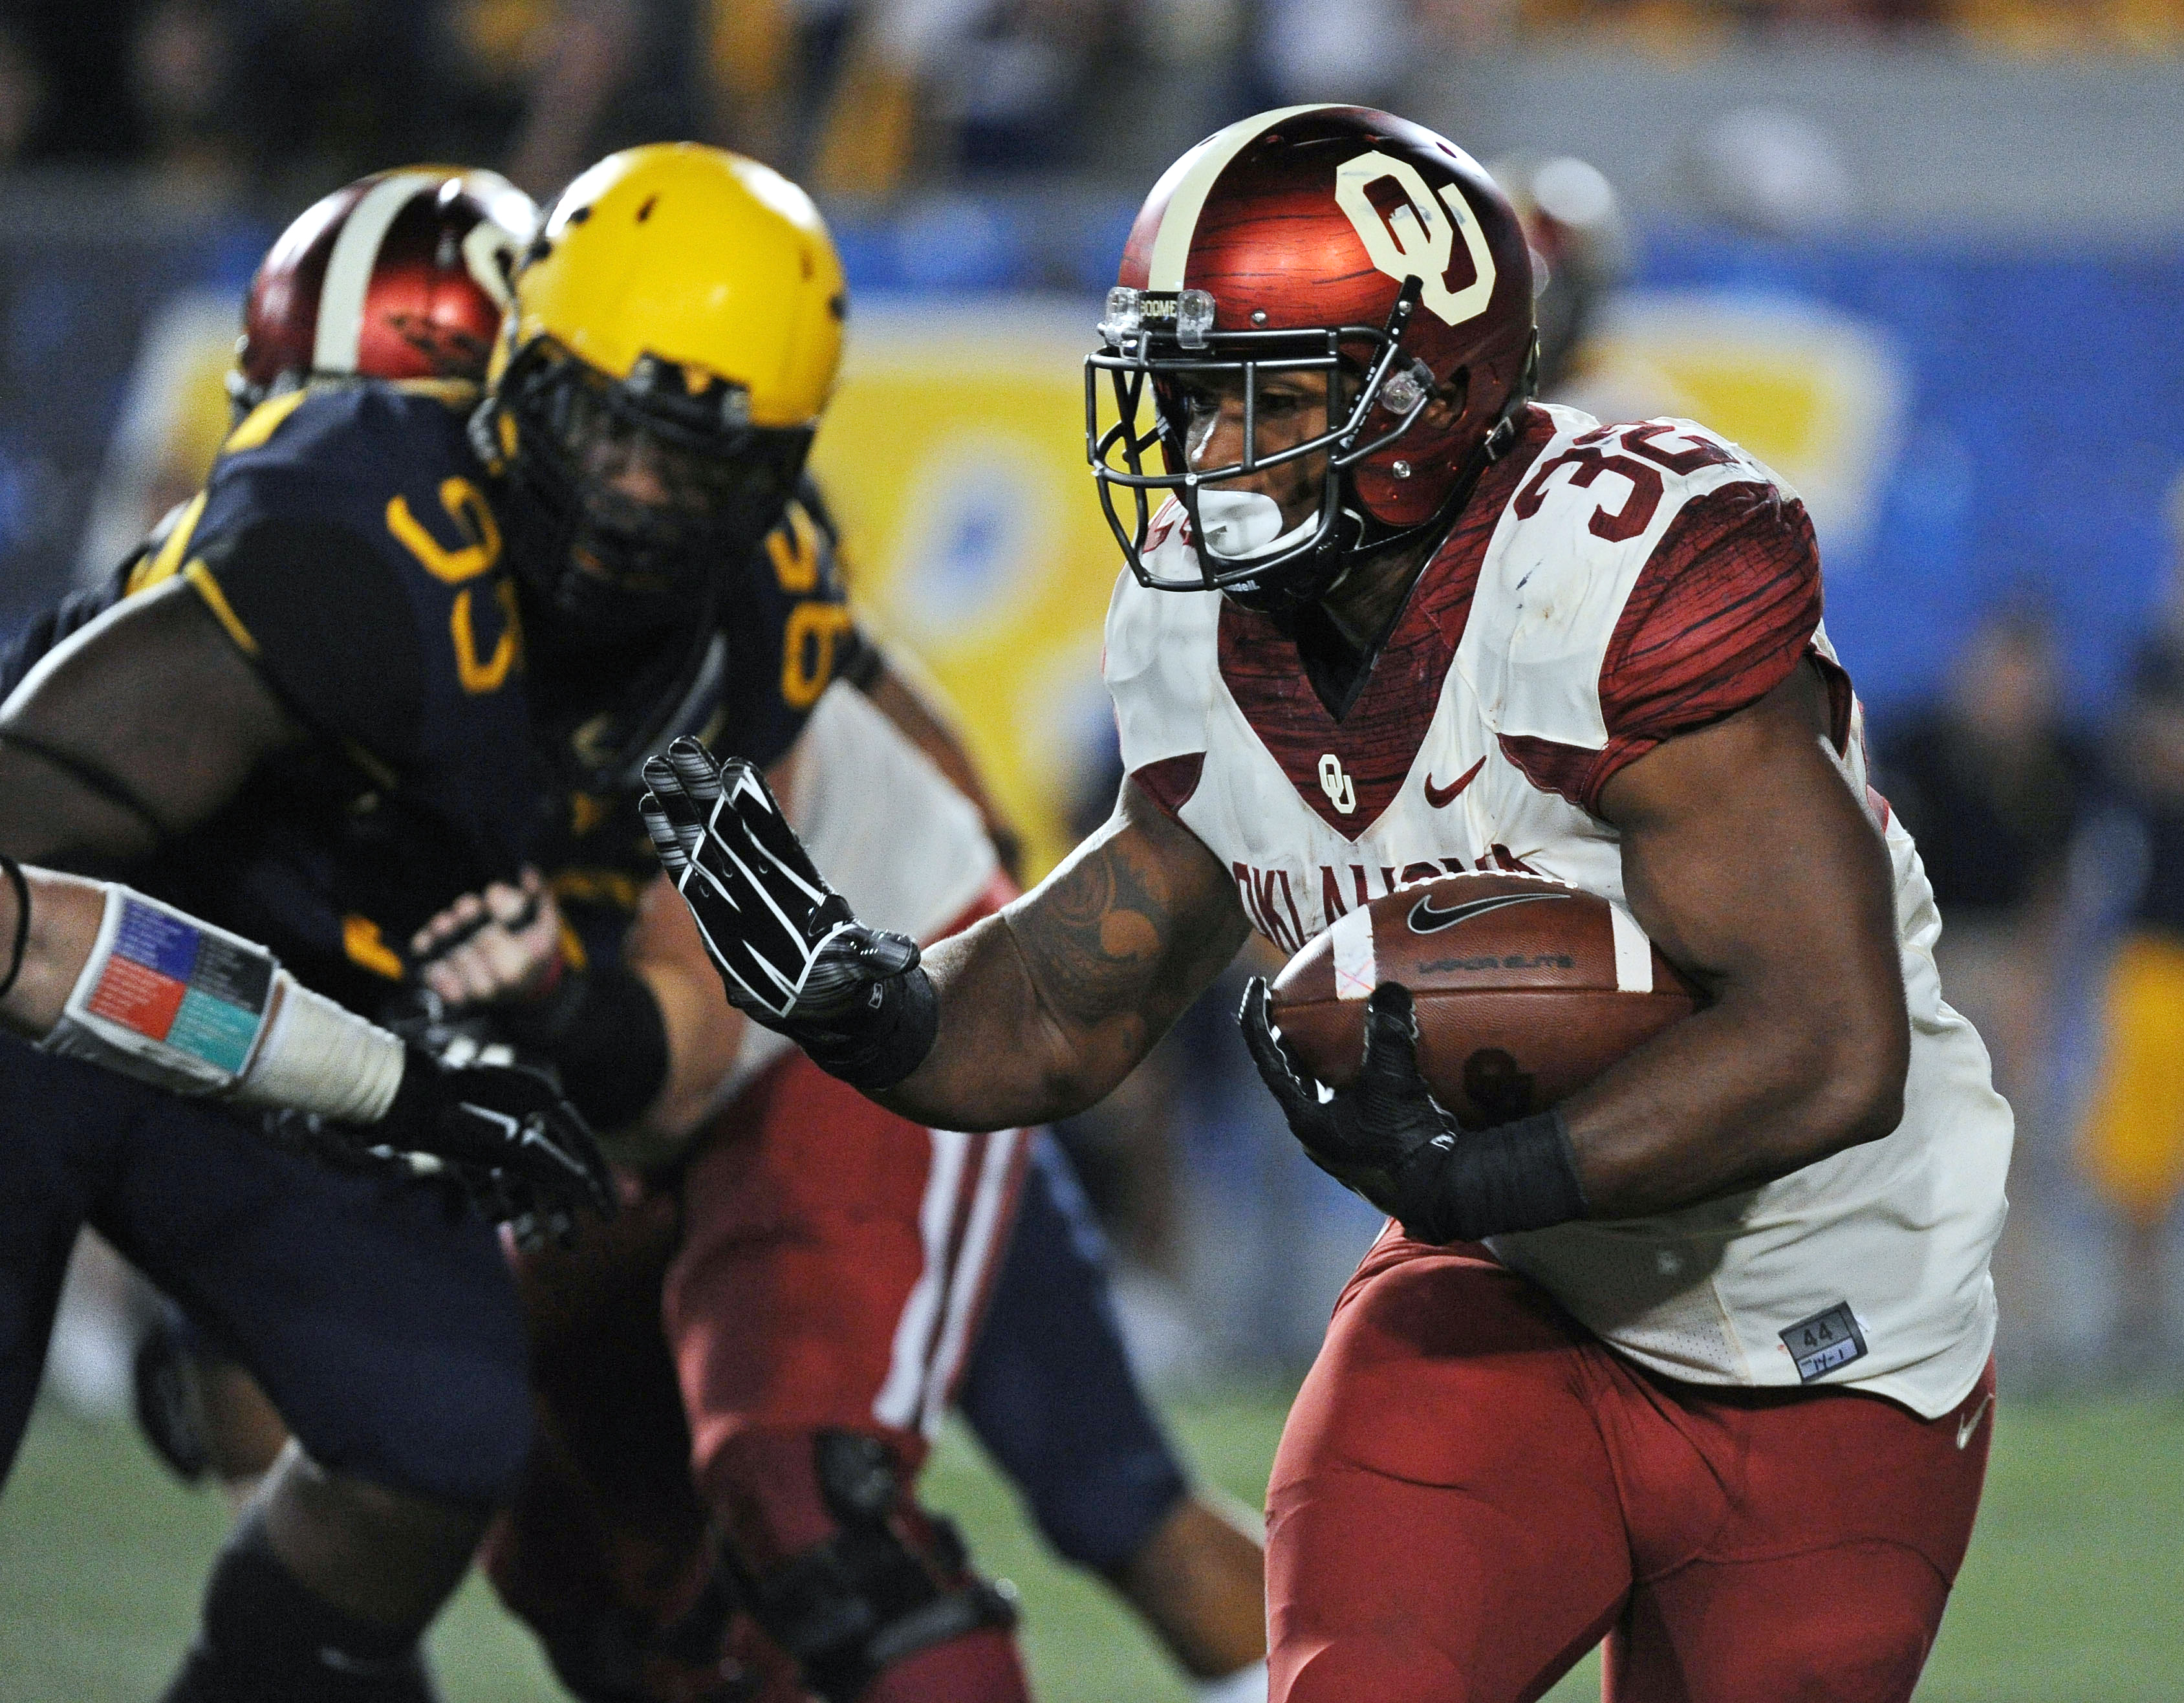 FILE - In this Sept. 20, 2014, file photo, Oklahoma's Samaje Perine (32) reaches to stiff-arm a West Virginia defender during the fourth quarter of an NCAA college football game in Morgantown, W.Va. Oklahoma's Samaje Perine rattles teeth, opens eyes and p